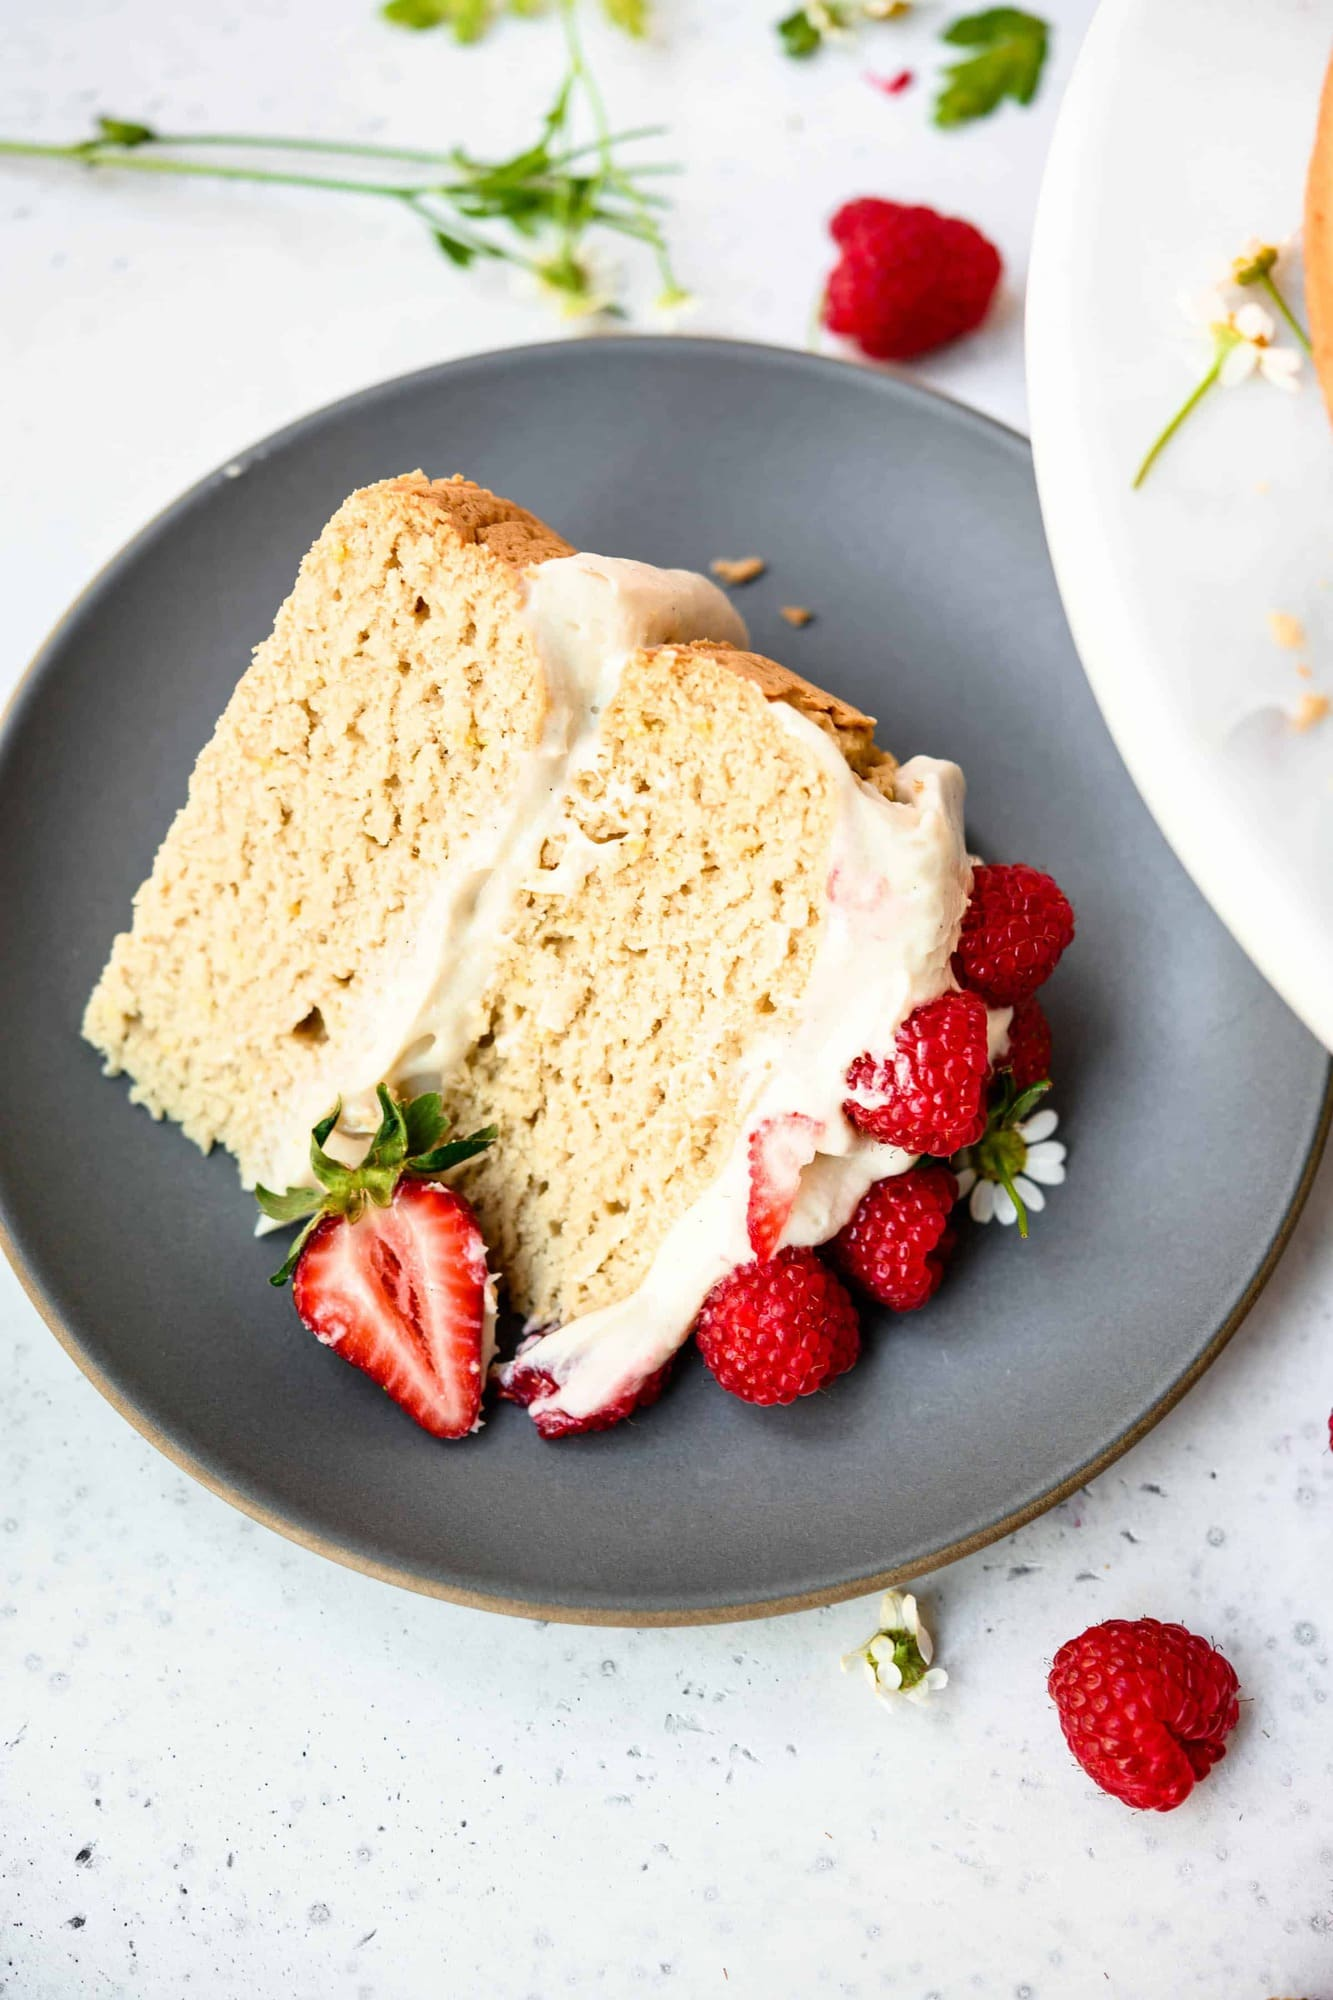 High side view of slice of vanilla layer cake topped with fresh berries on a gray plate